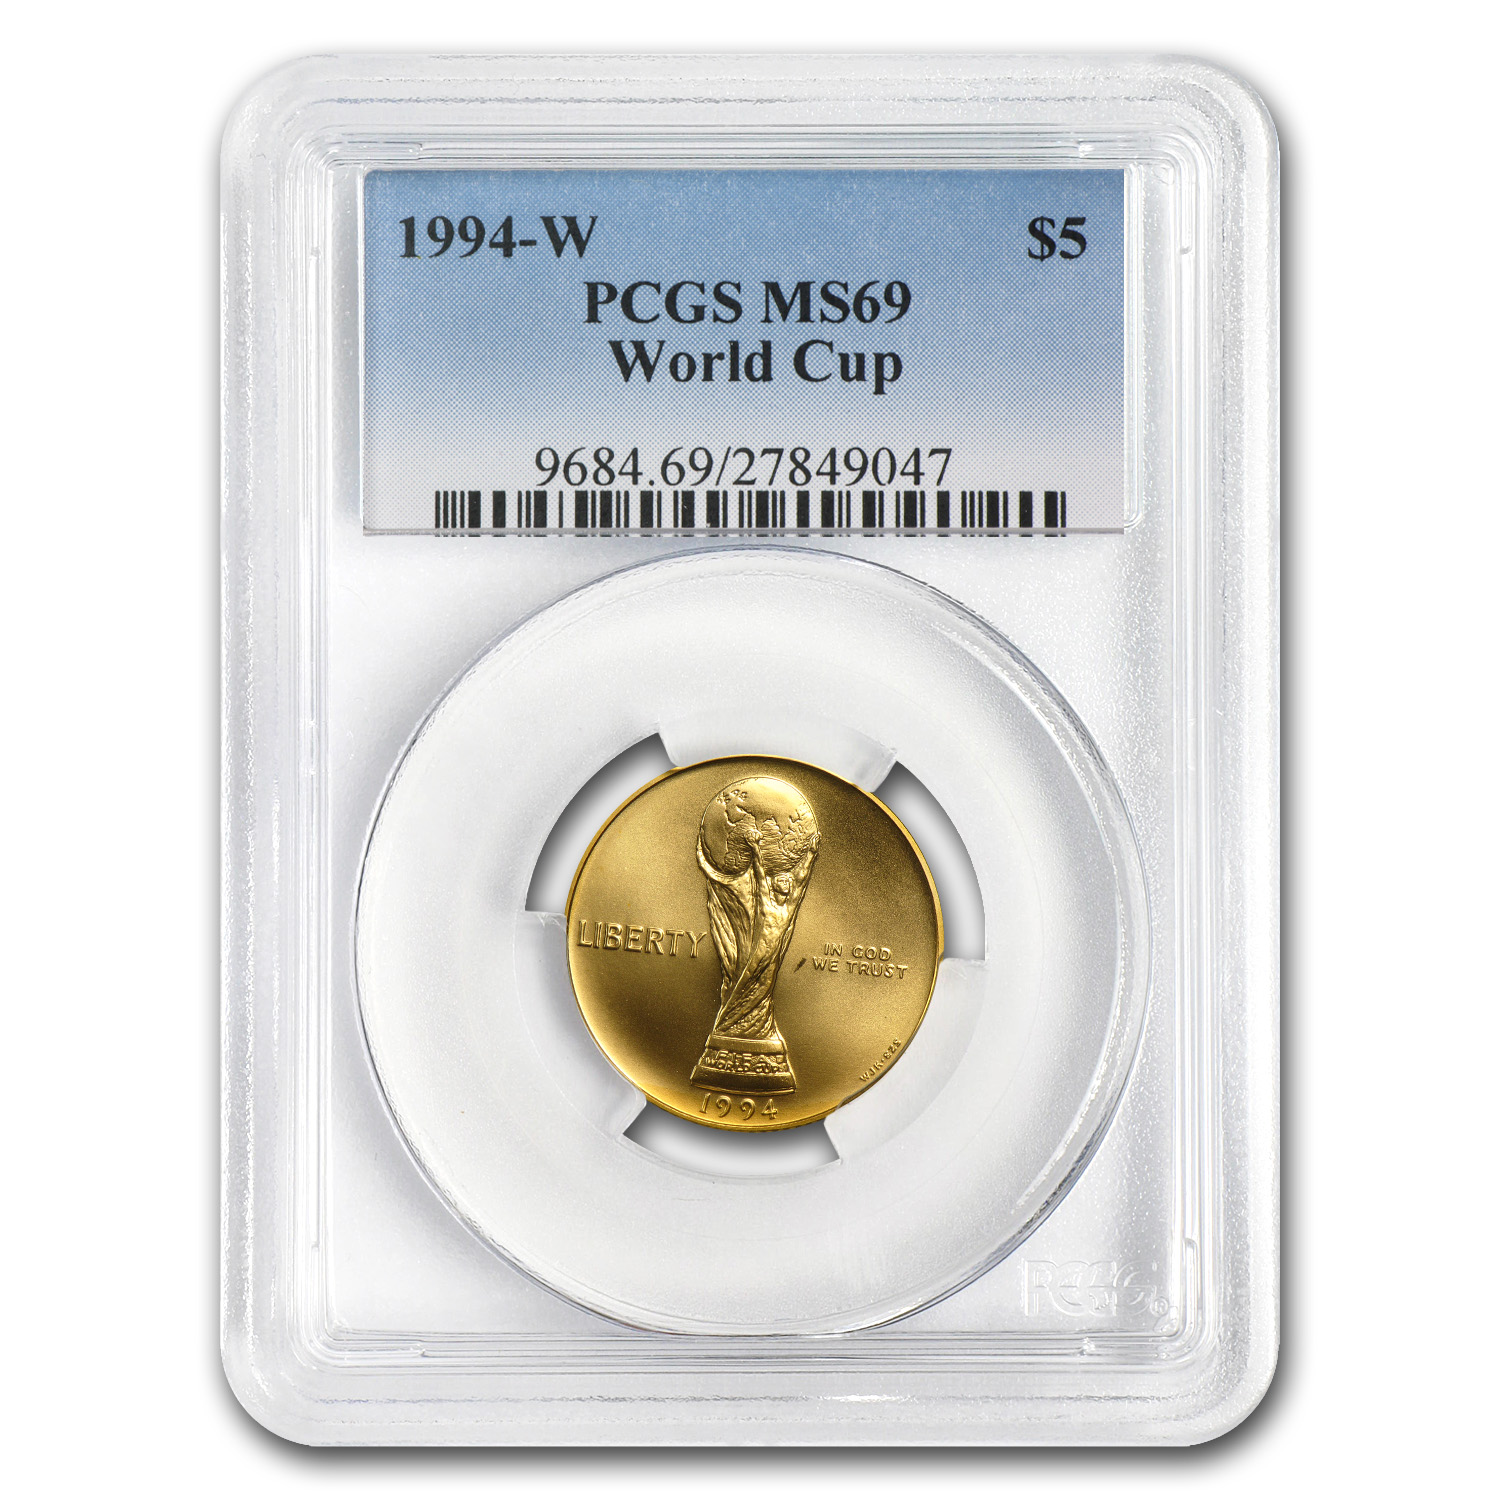 1994-W Gold $5 Commemorative World Cup MS-69 PCGS